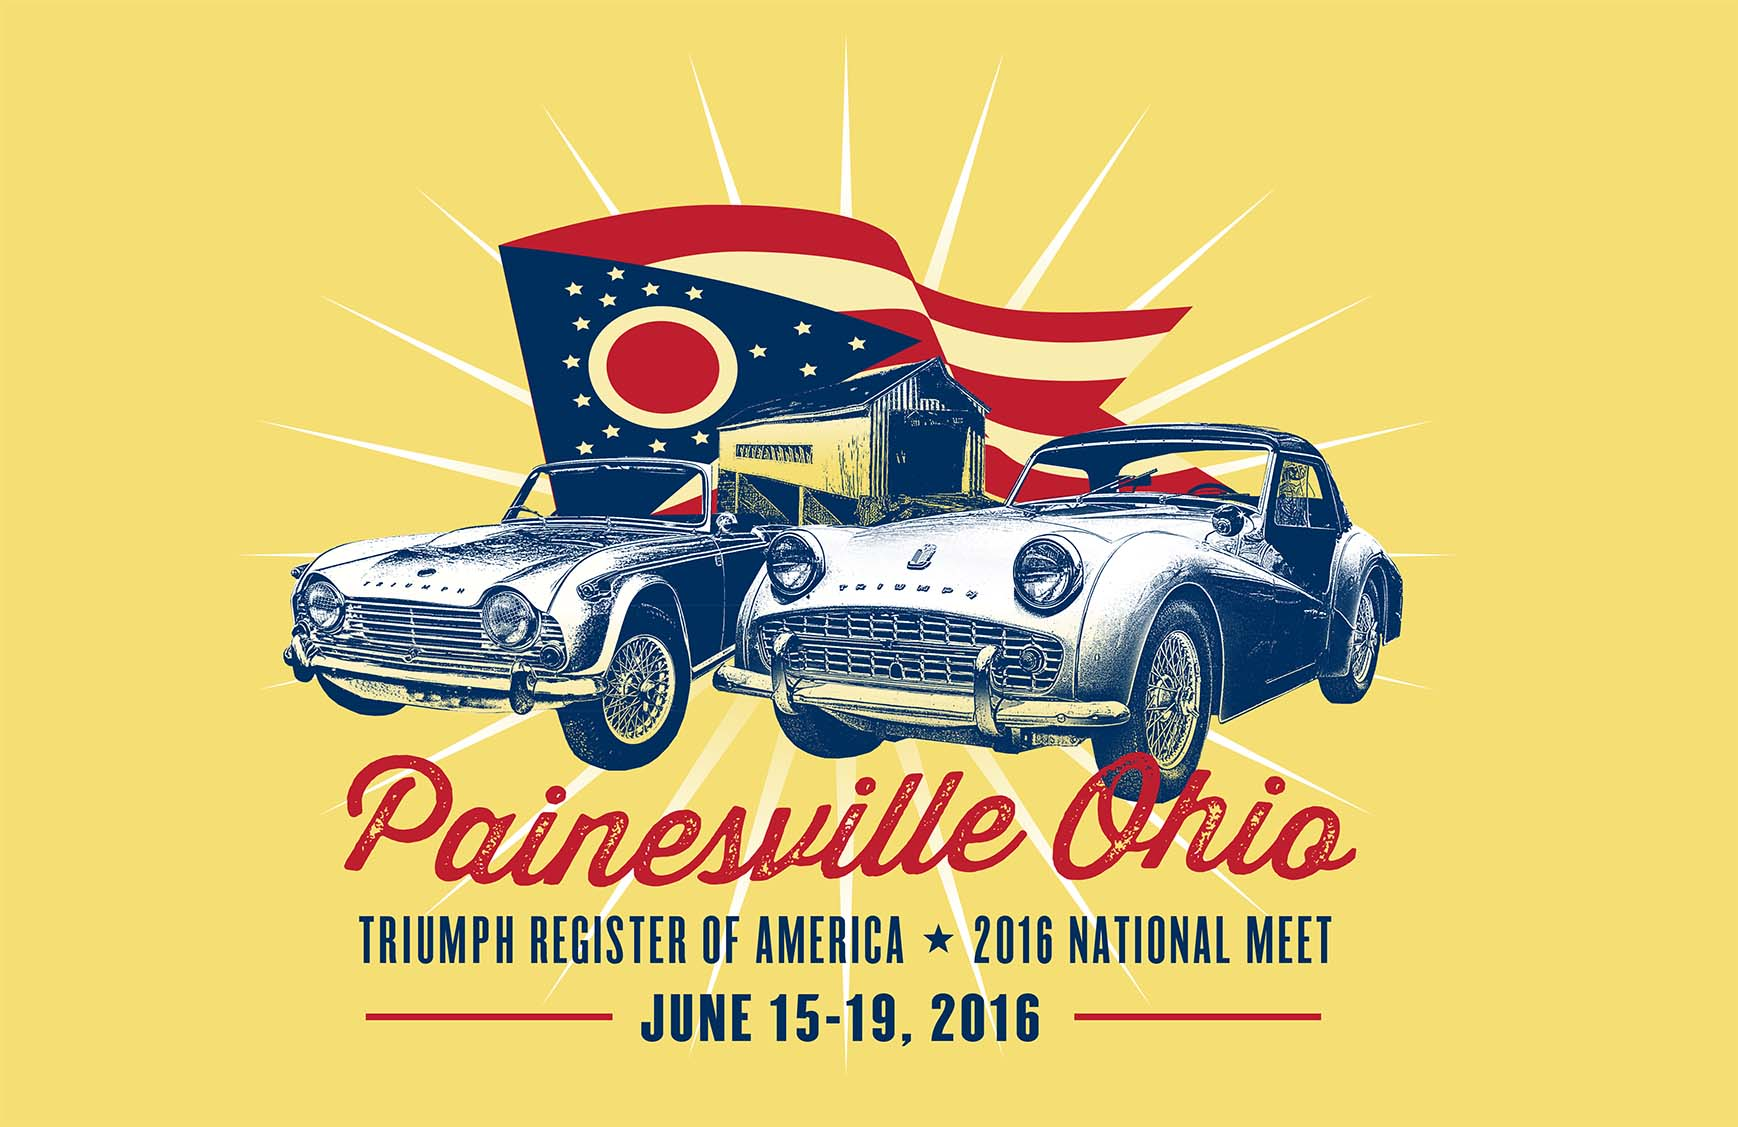 2016 TRIUMPH REGISTER OF AMERICA NATIONAL MEET